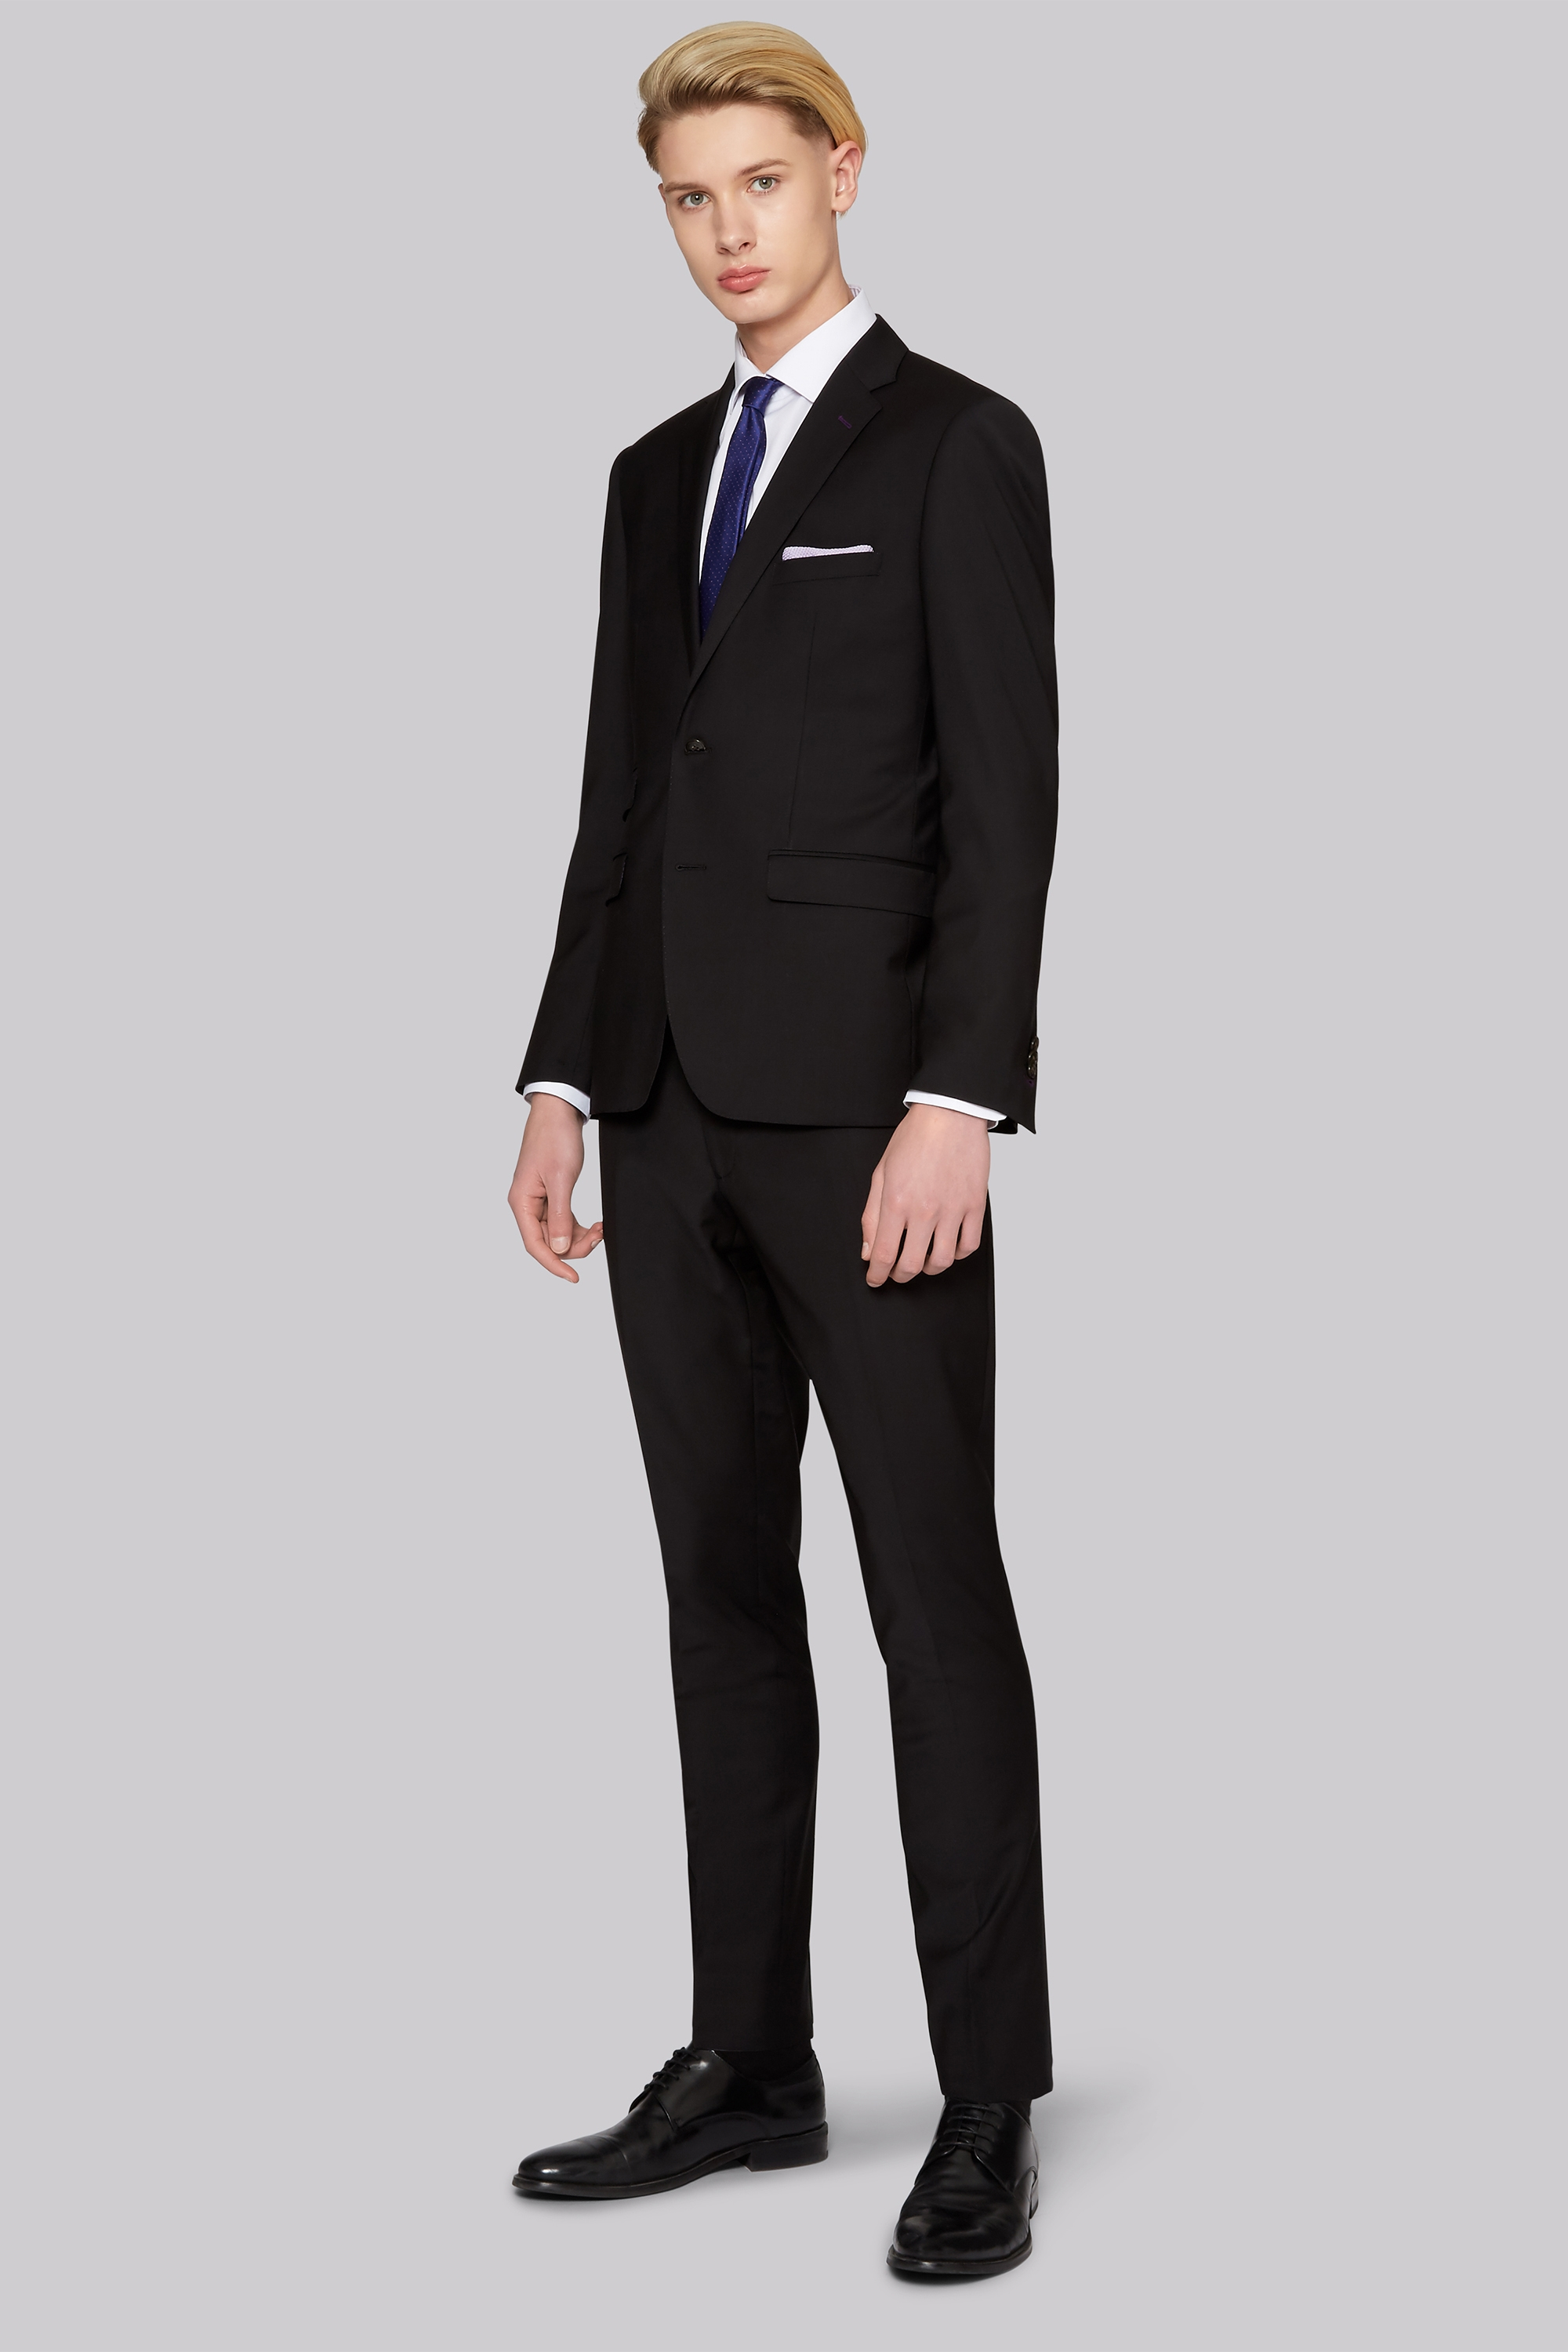 Bros Skinny Fit Performance Black Suit